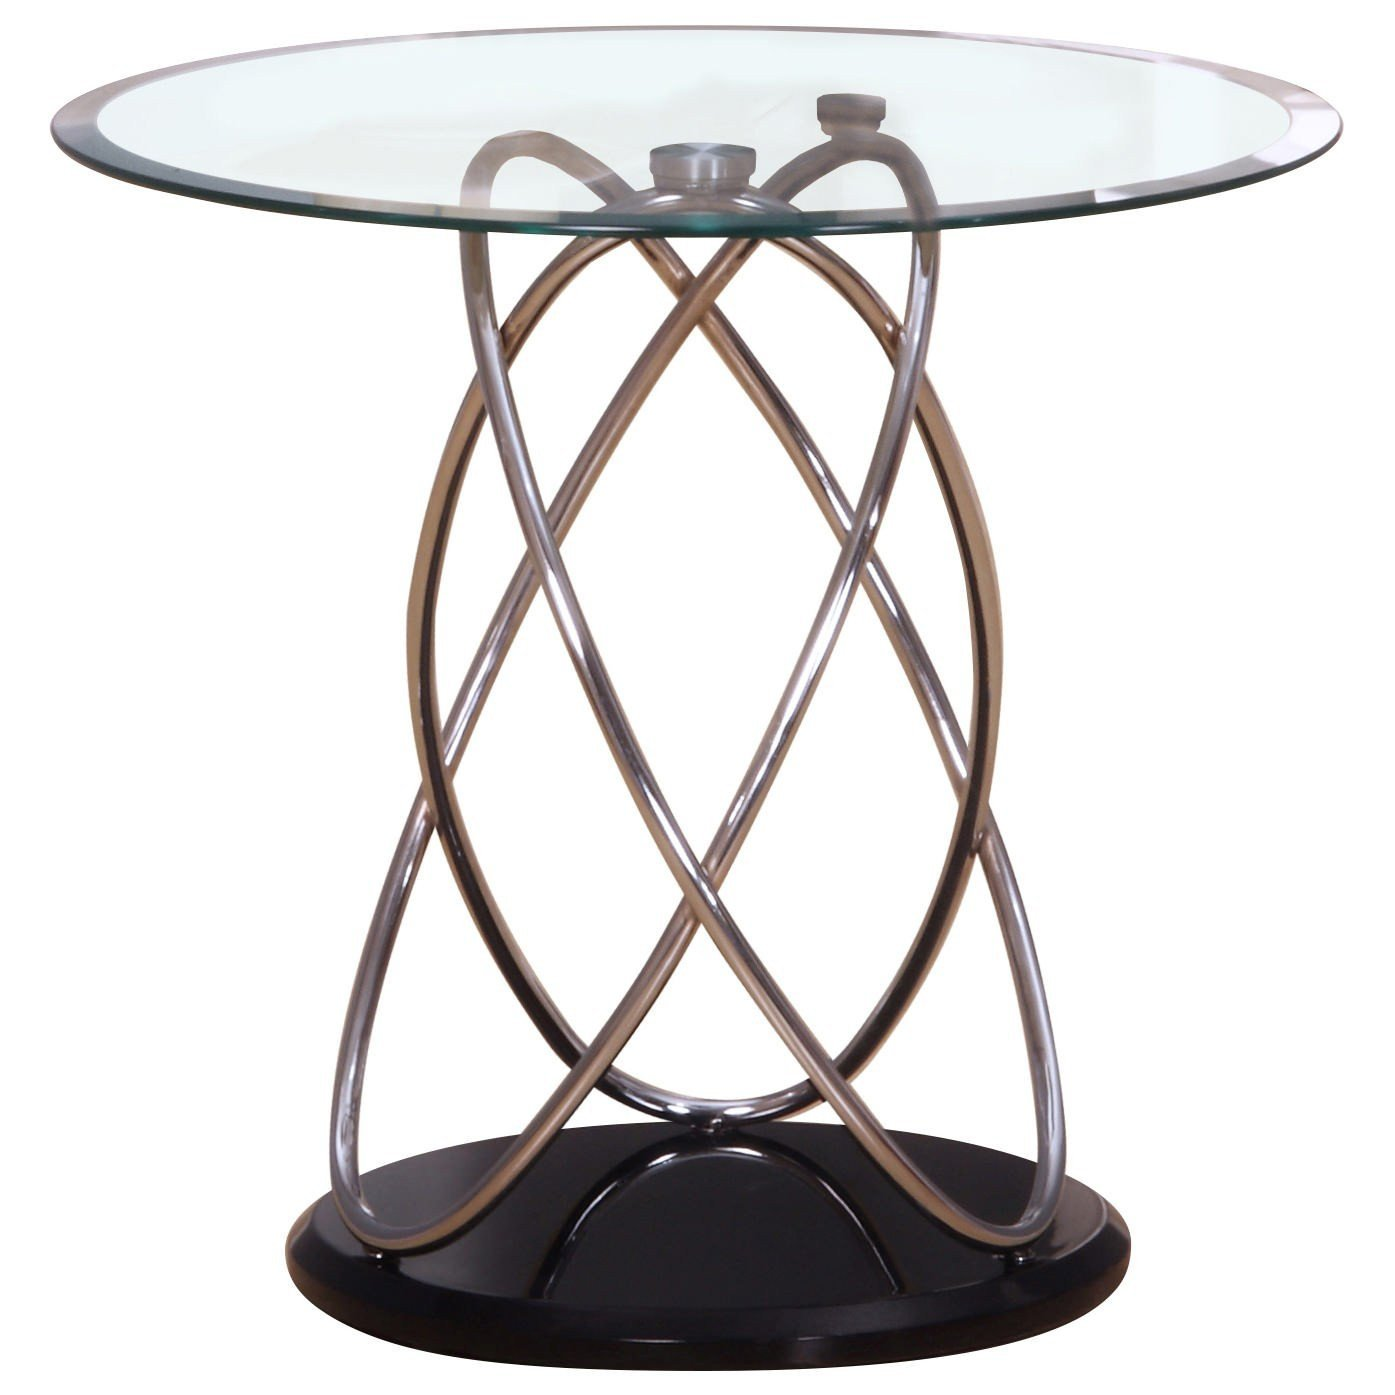 kohls nike the terrific great black glass end side table distinctive curved coffee centre with captivating chrome lamp small clear vintage legs shoe storage ideas big lots dining